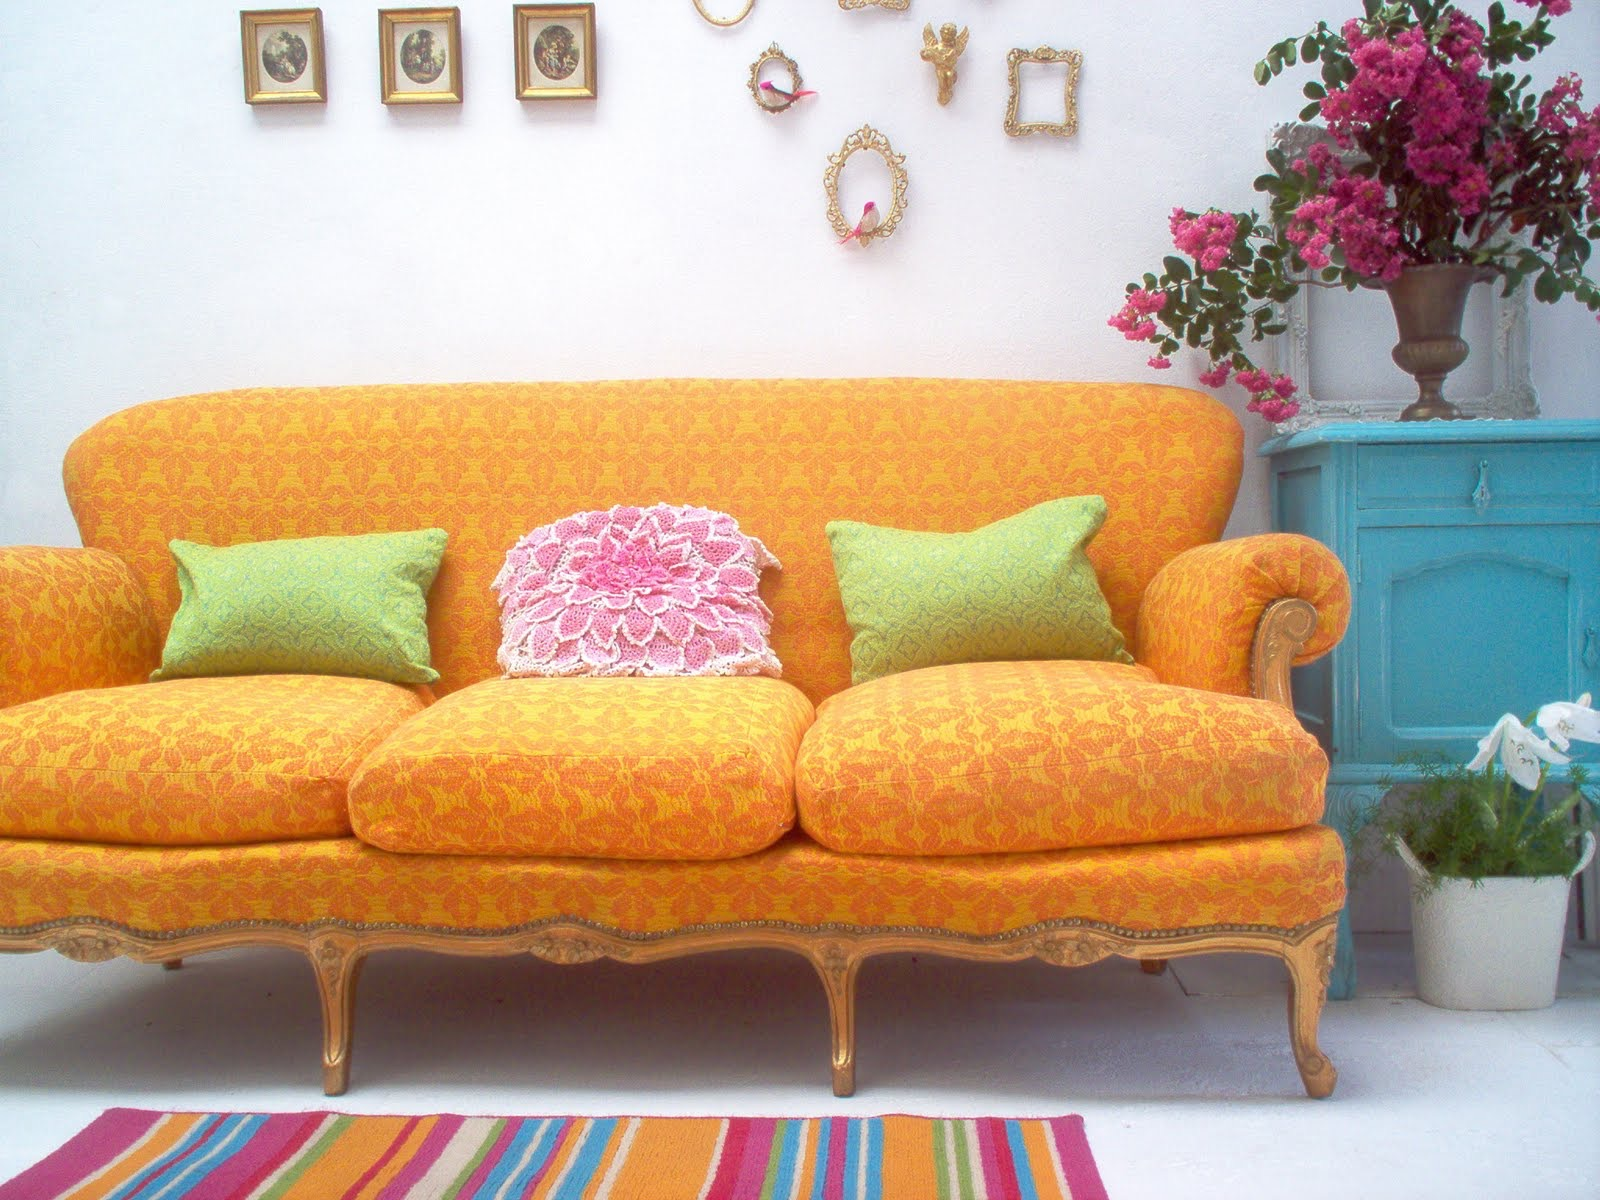 Cozy Moroccan Living Room Chair Furniture (View 22 of 25)